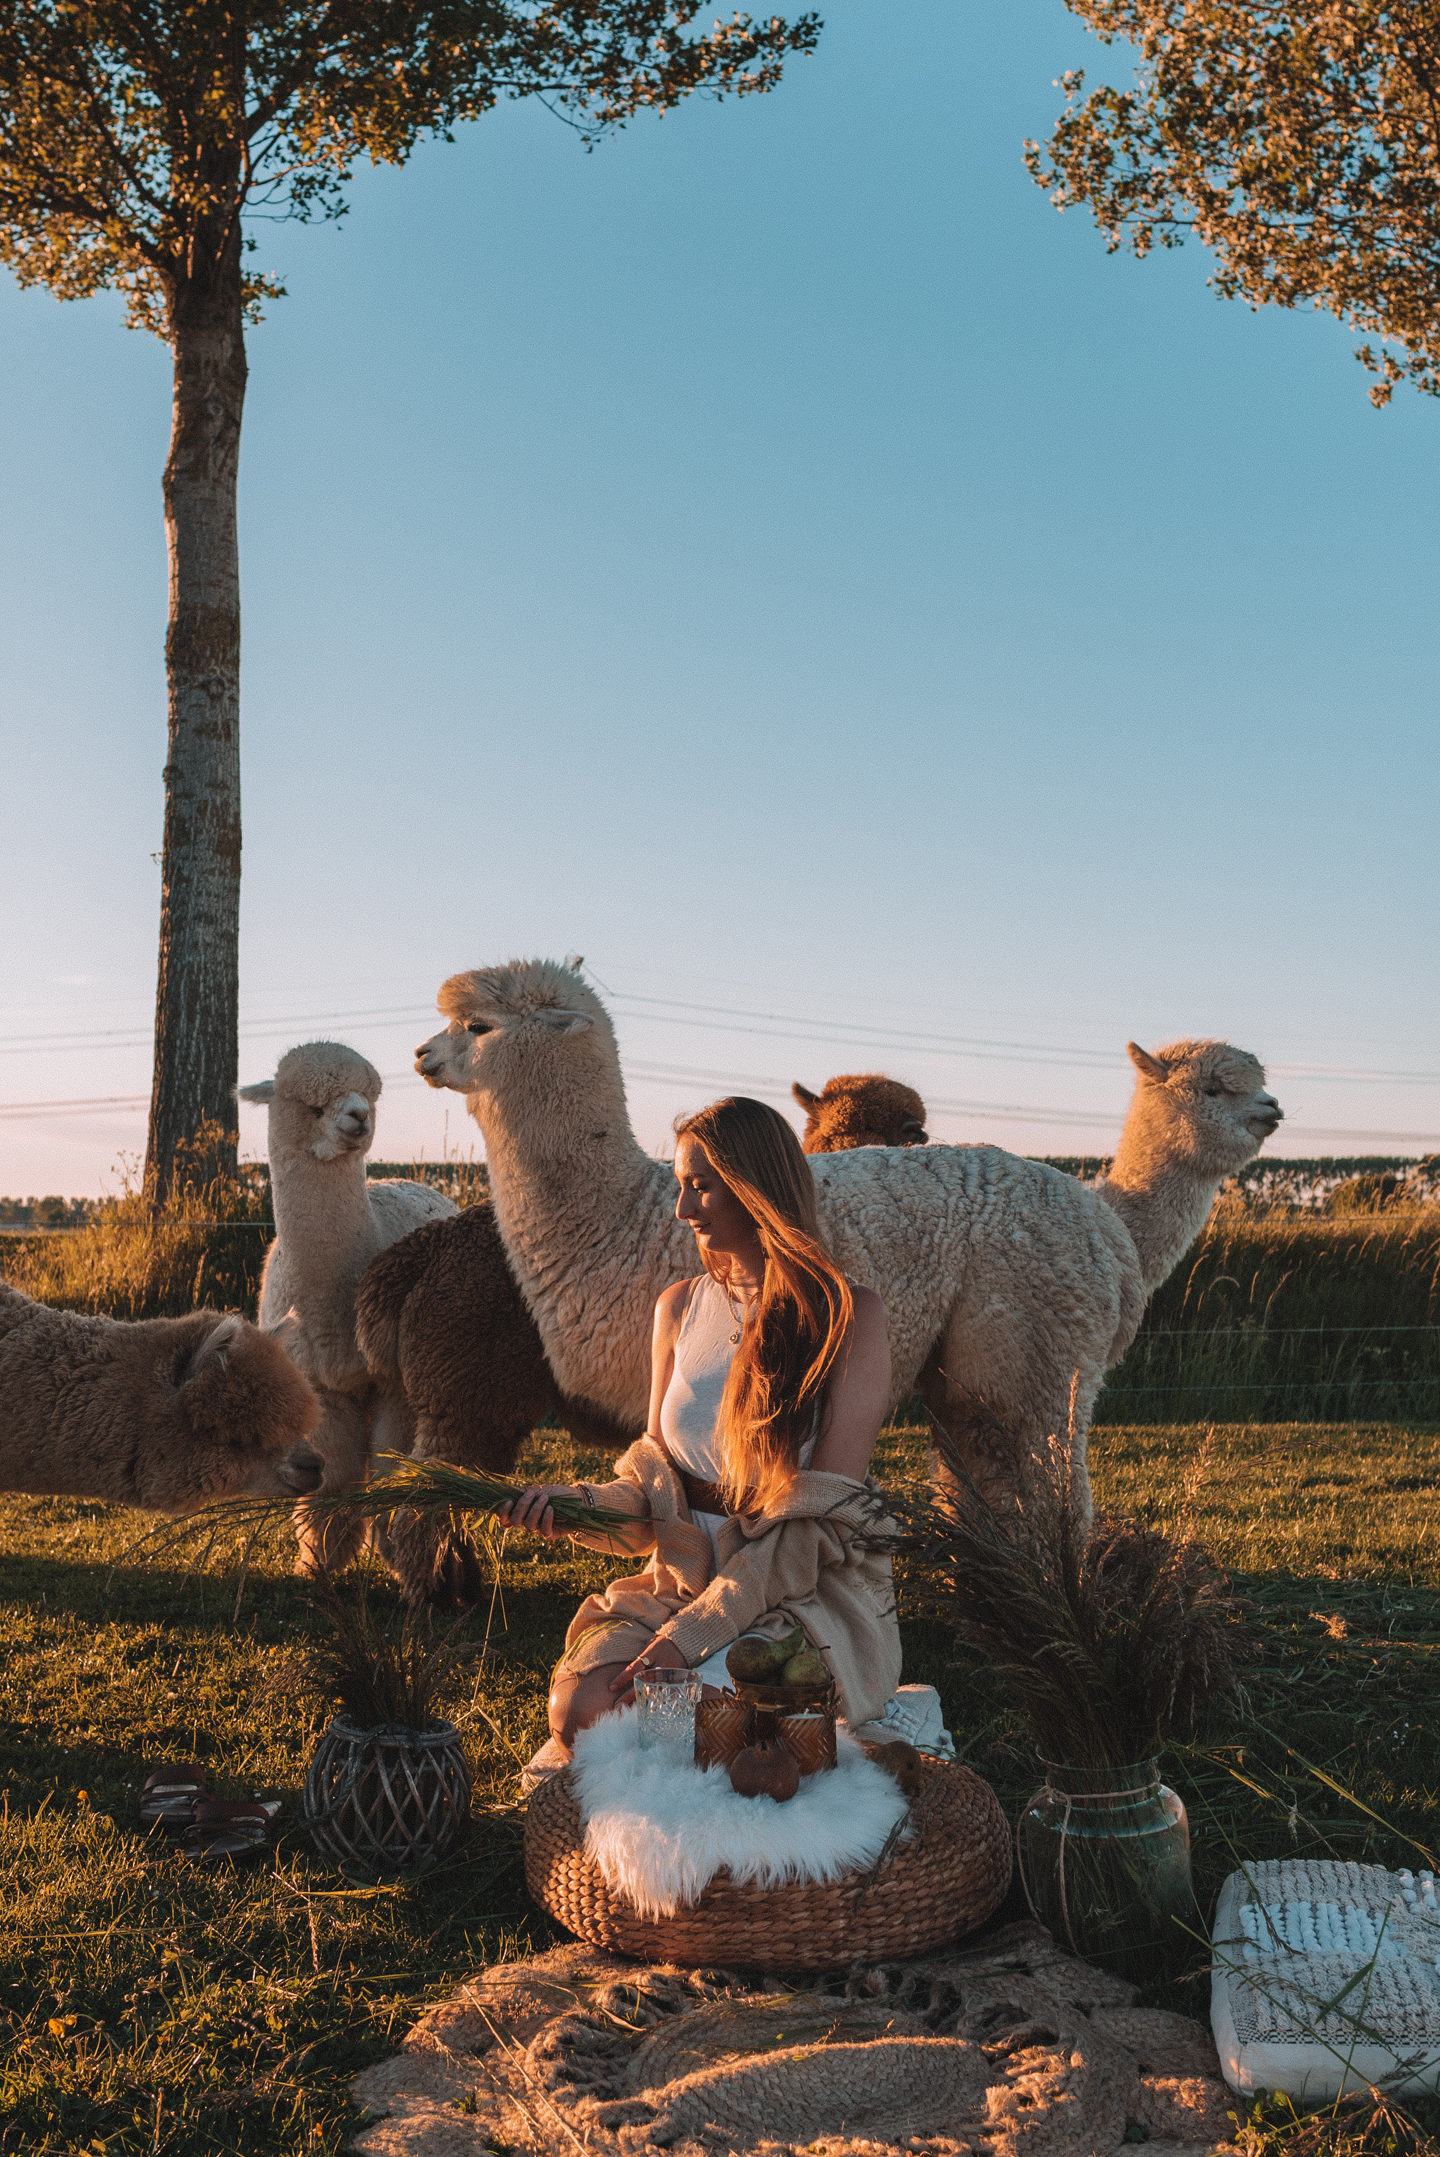 Linda's Wholesome Life alpaca picnic A public service announcement